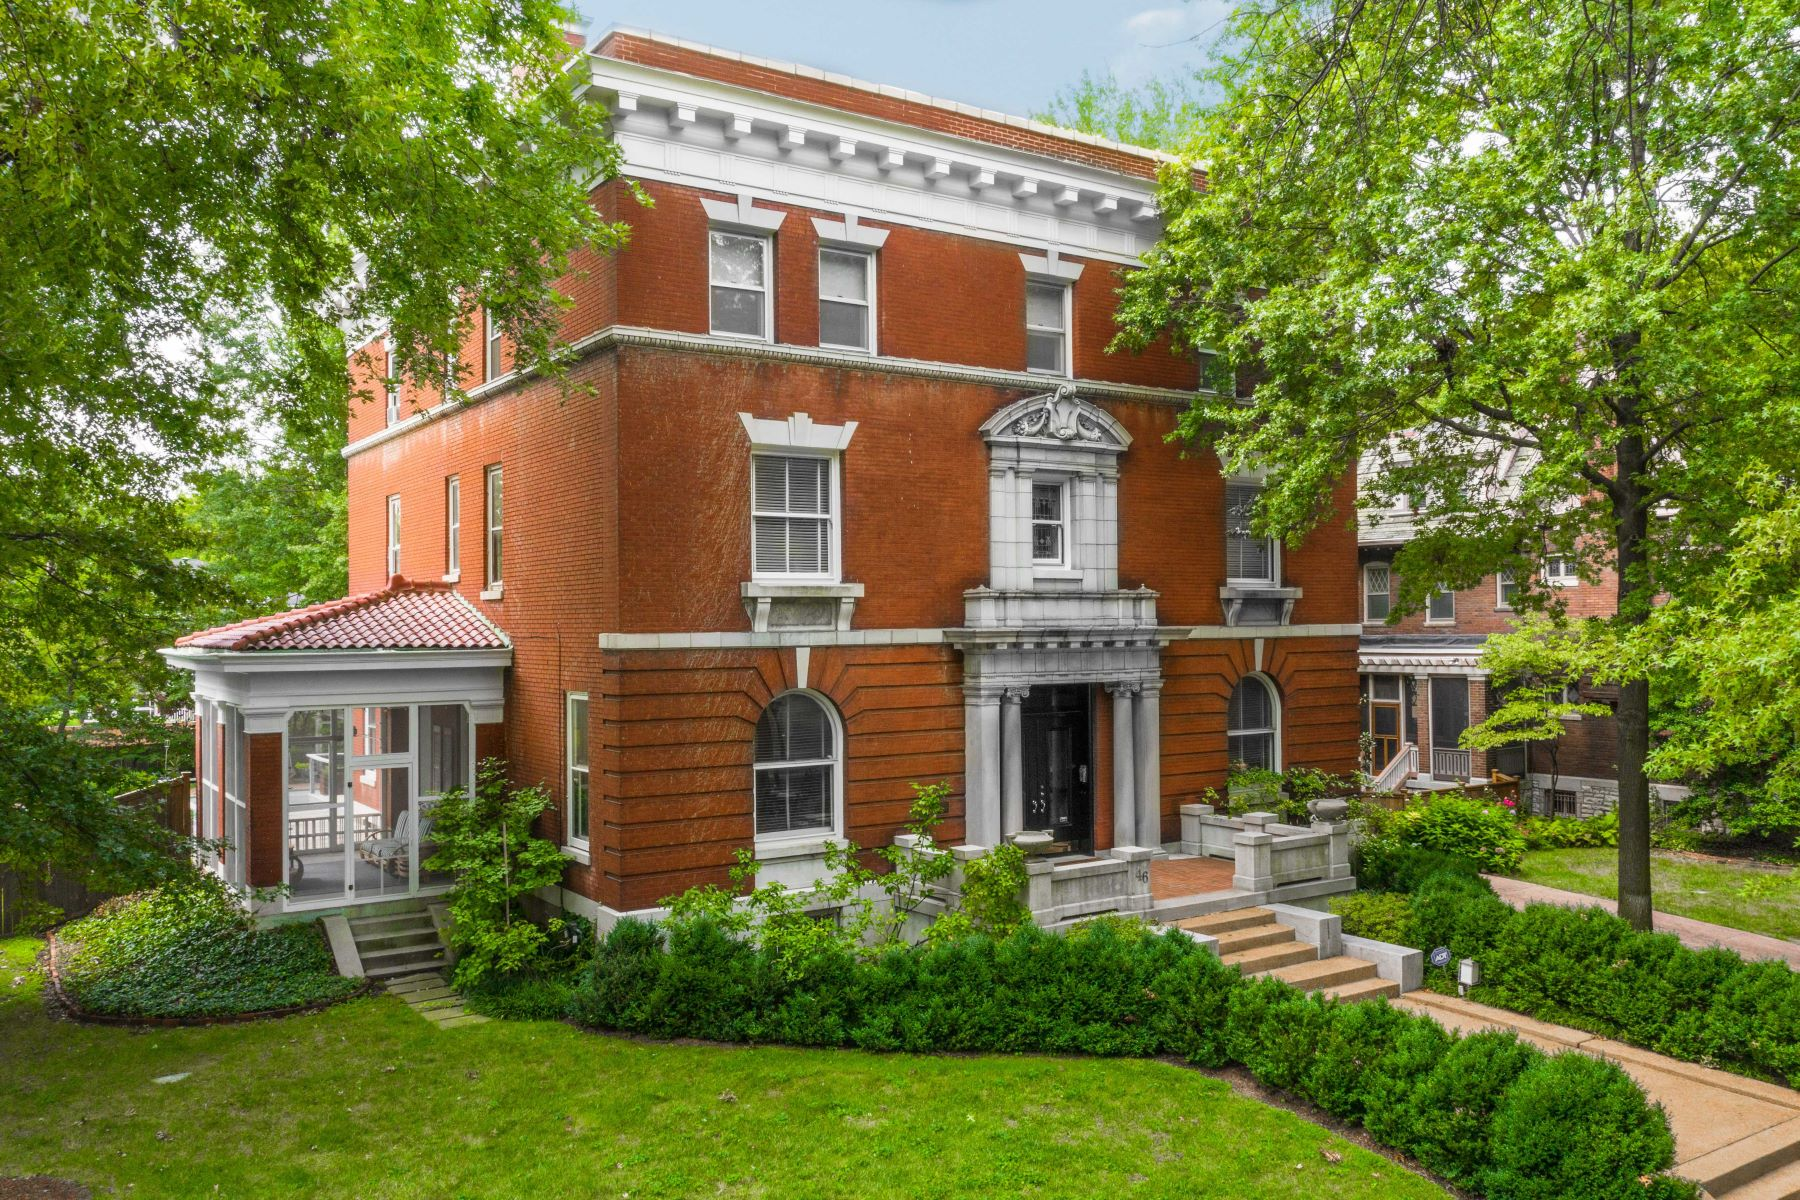 Single Family Homes for Sale at Beautiful Central West End Manse on a Private Street 46 Washington Terrace St. Louis, Missouri 63112 United States